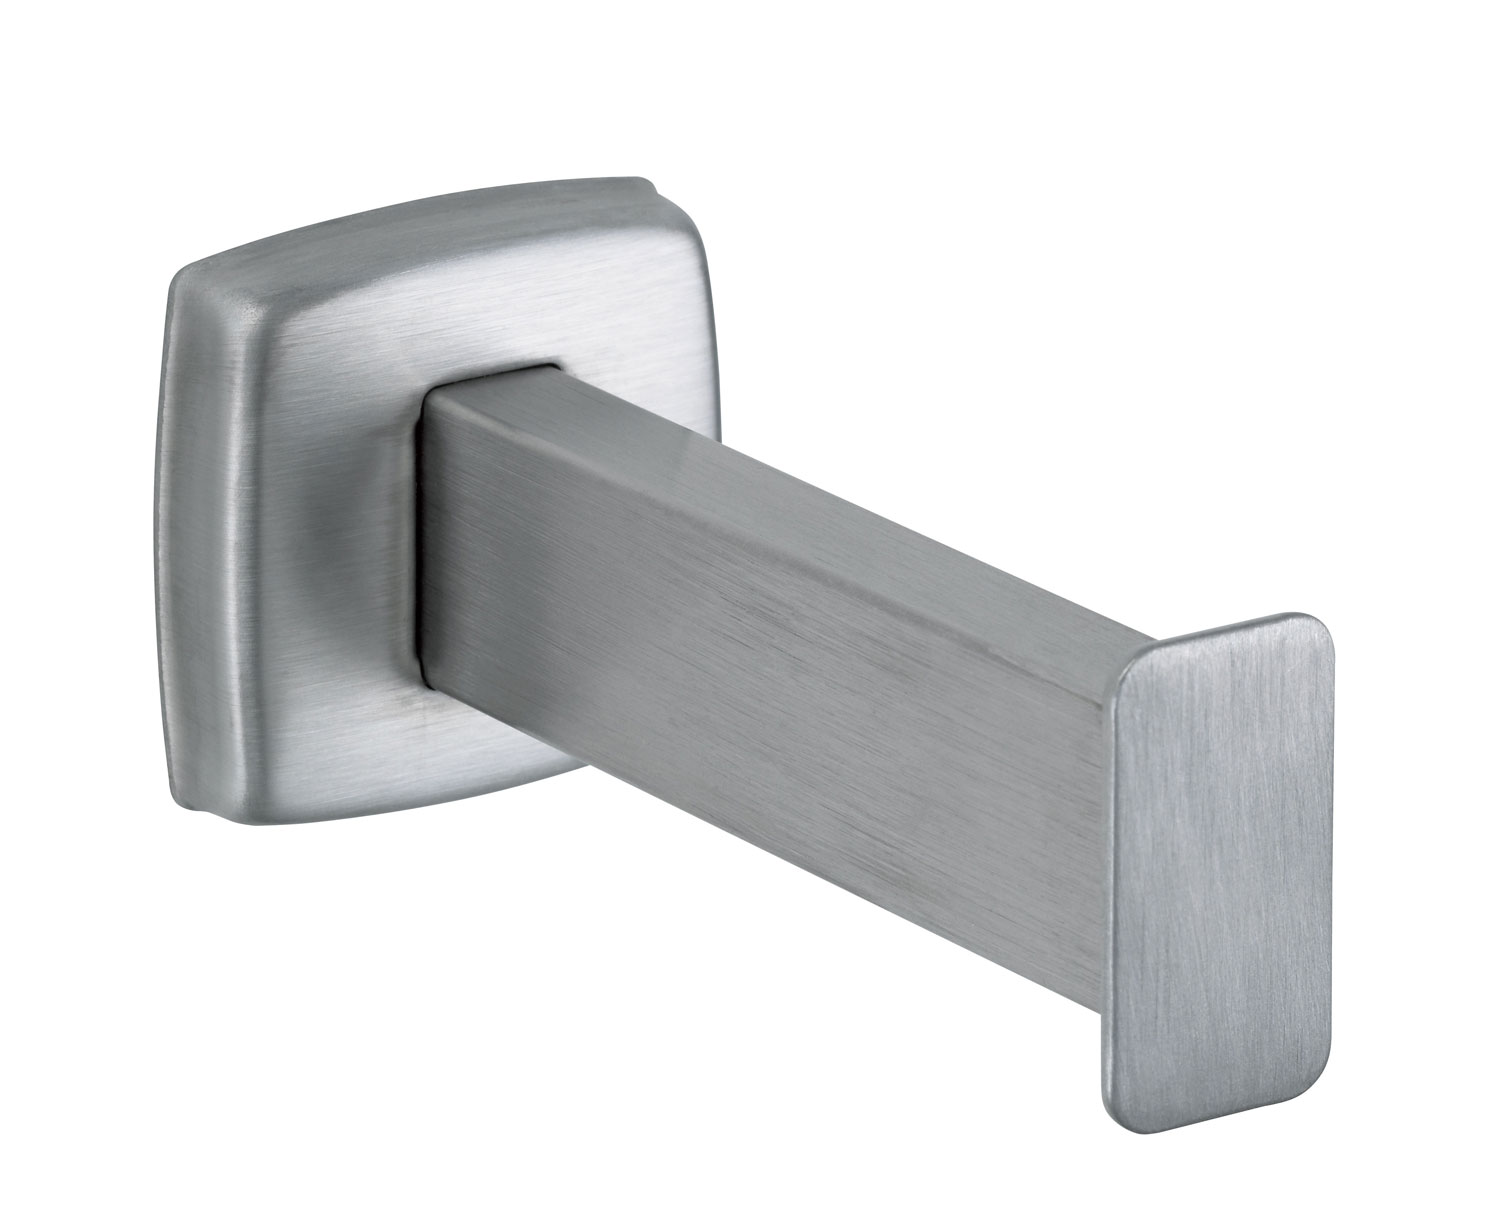 Bradley 9314 Satin Finish Stainless Steel Towel Hook